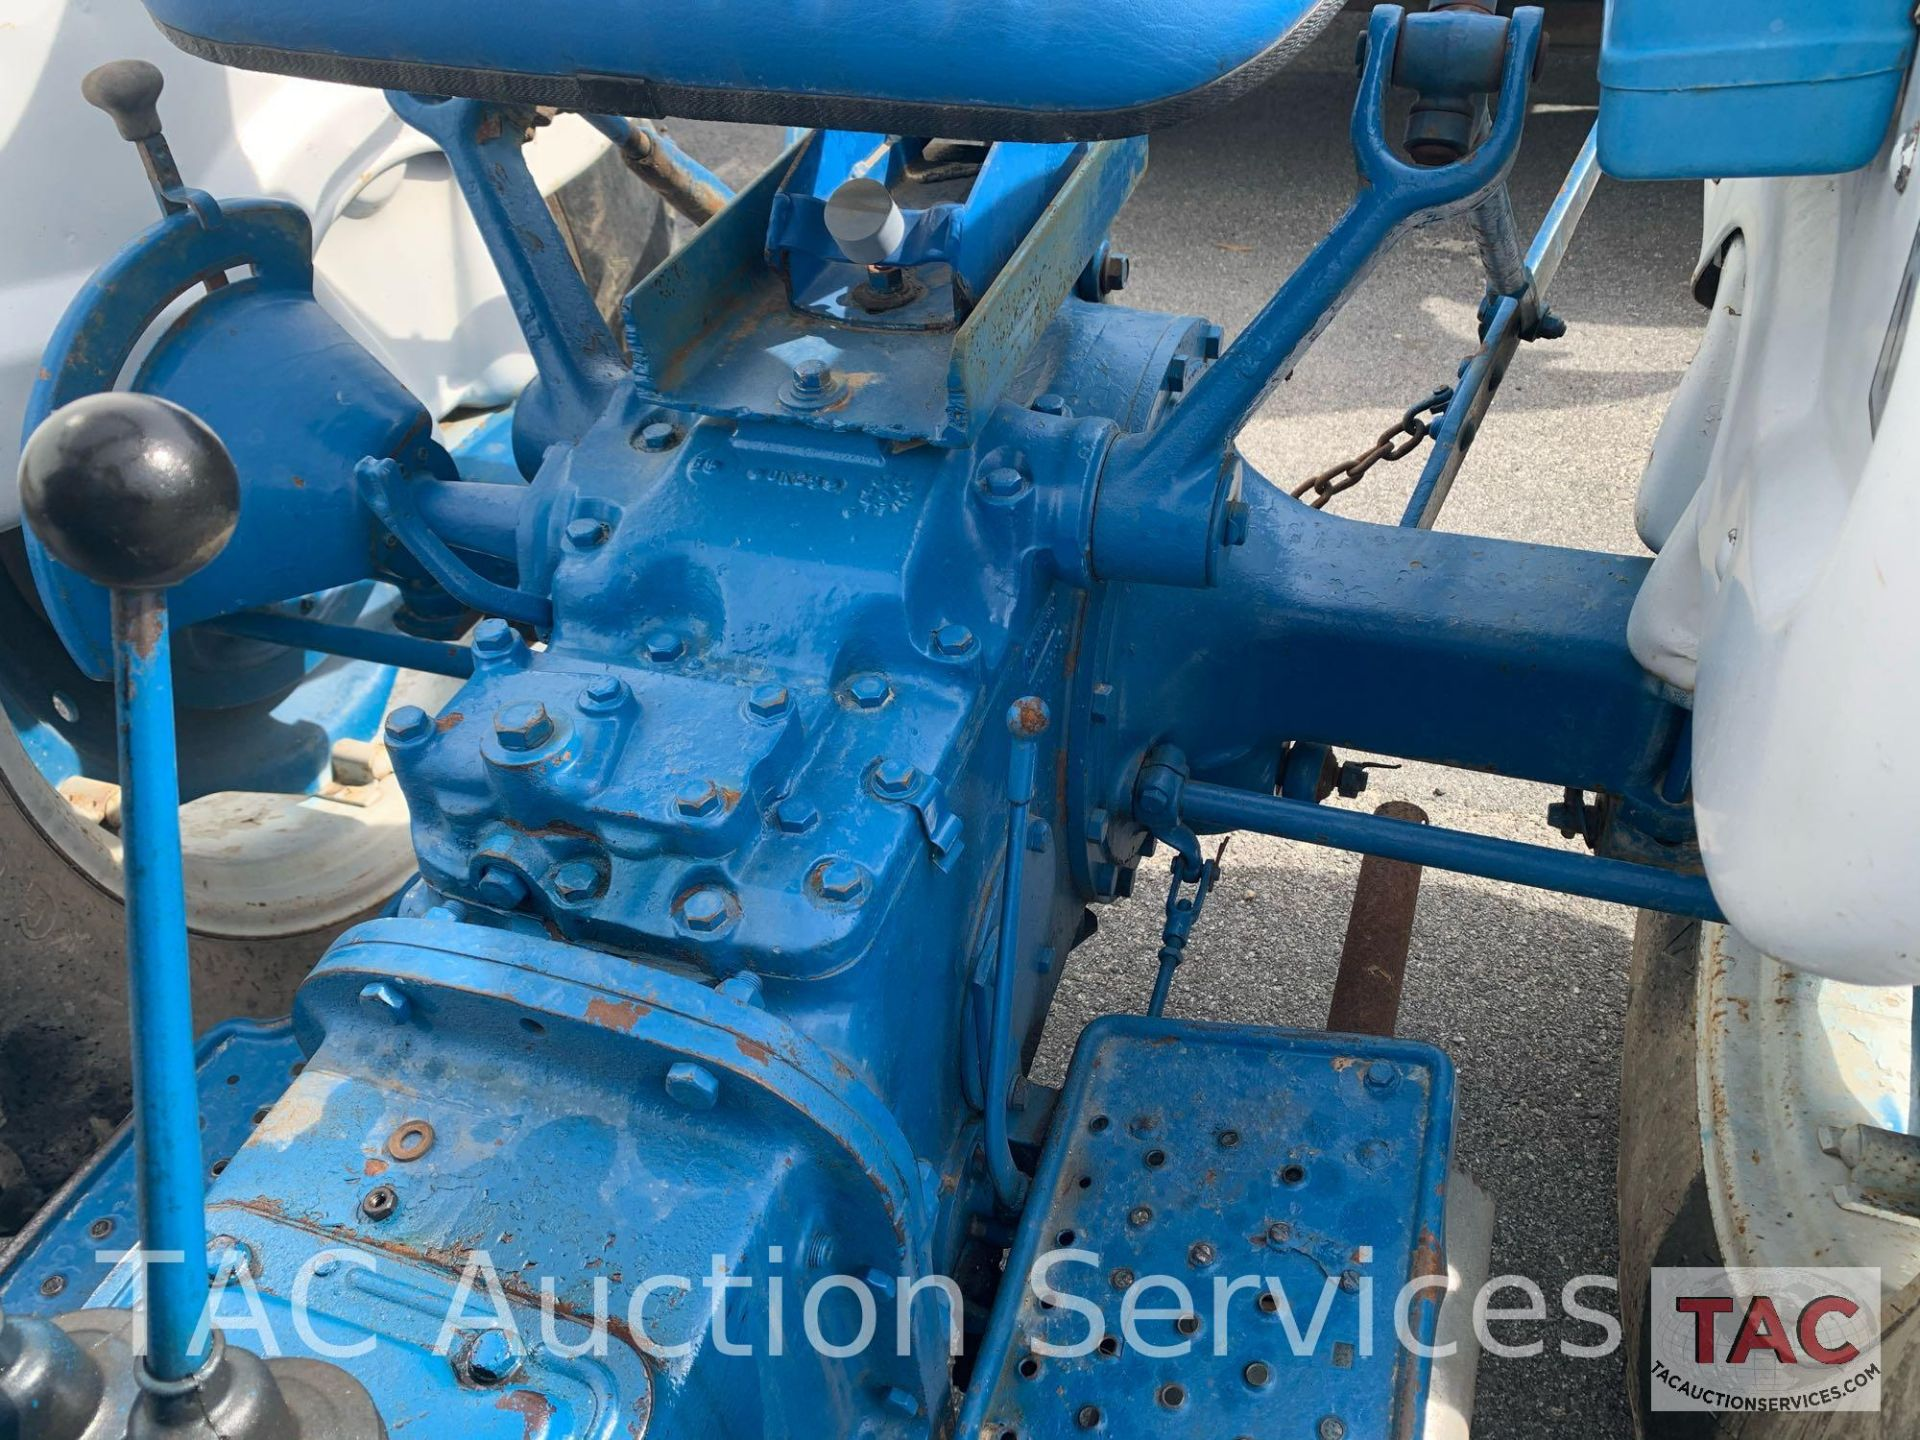 Ford 2000 Farm Tractor - Image 20 of 28